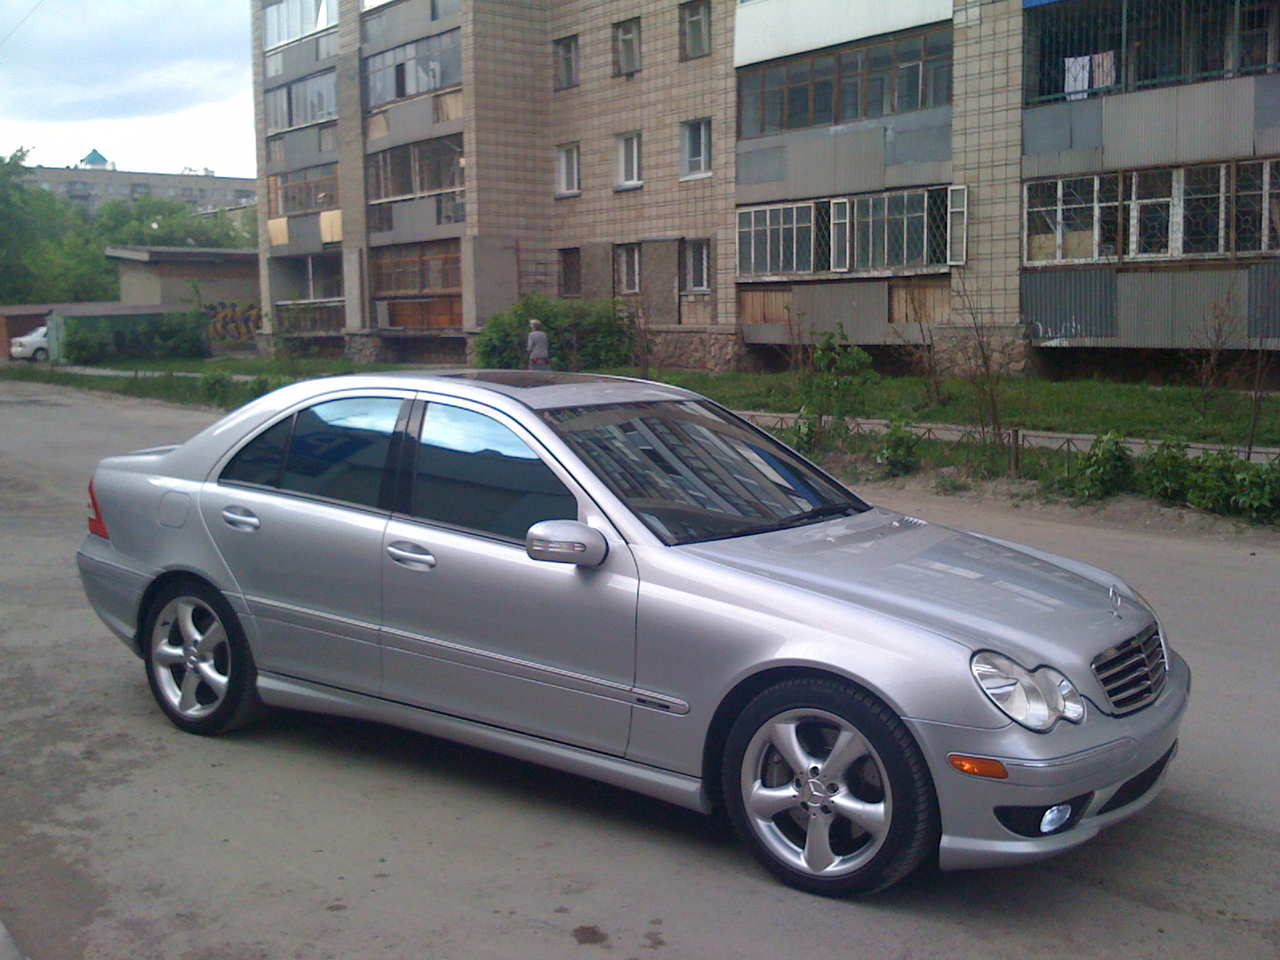 2006 mercedes benz c class pictures gasoline fr for Mercedes benz c class 2006 price